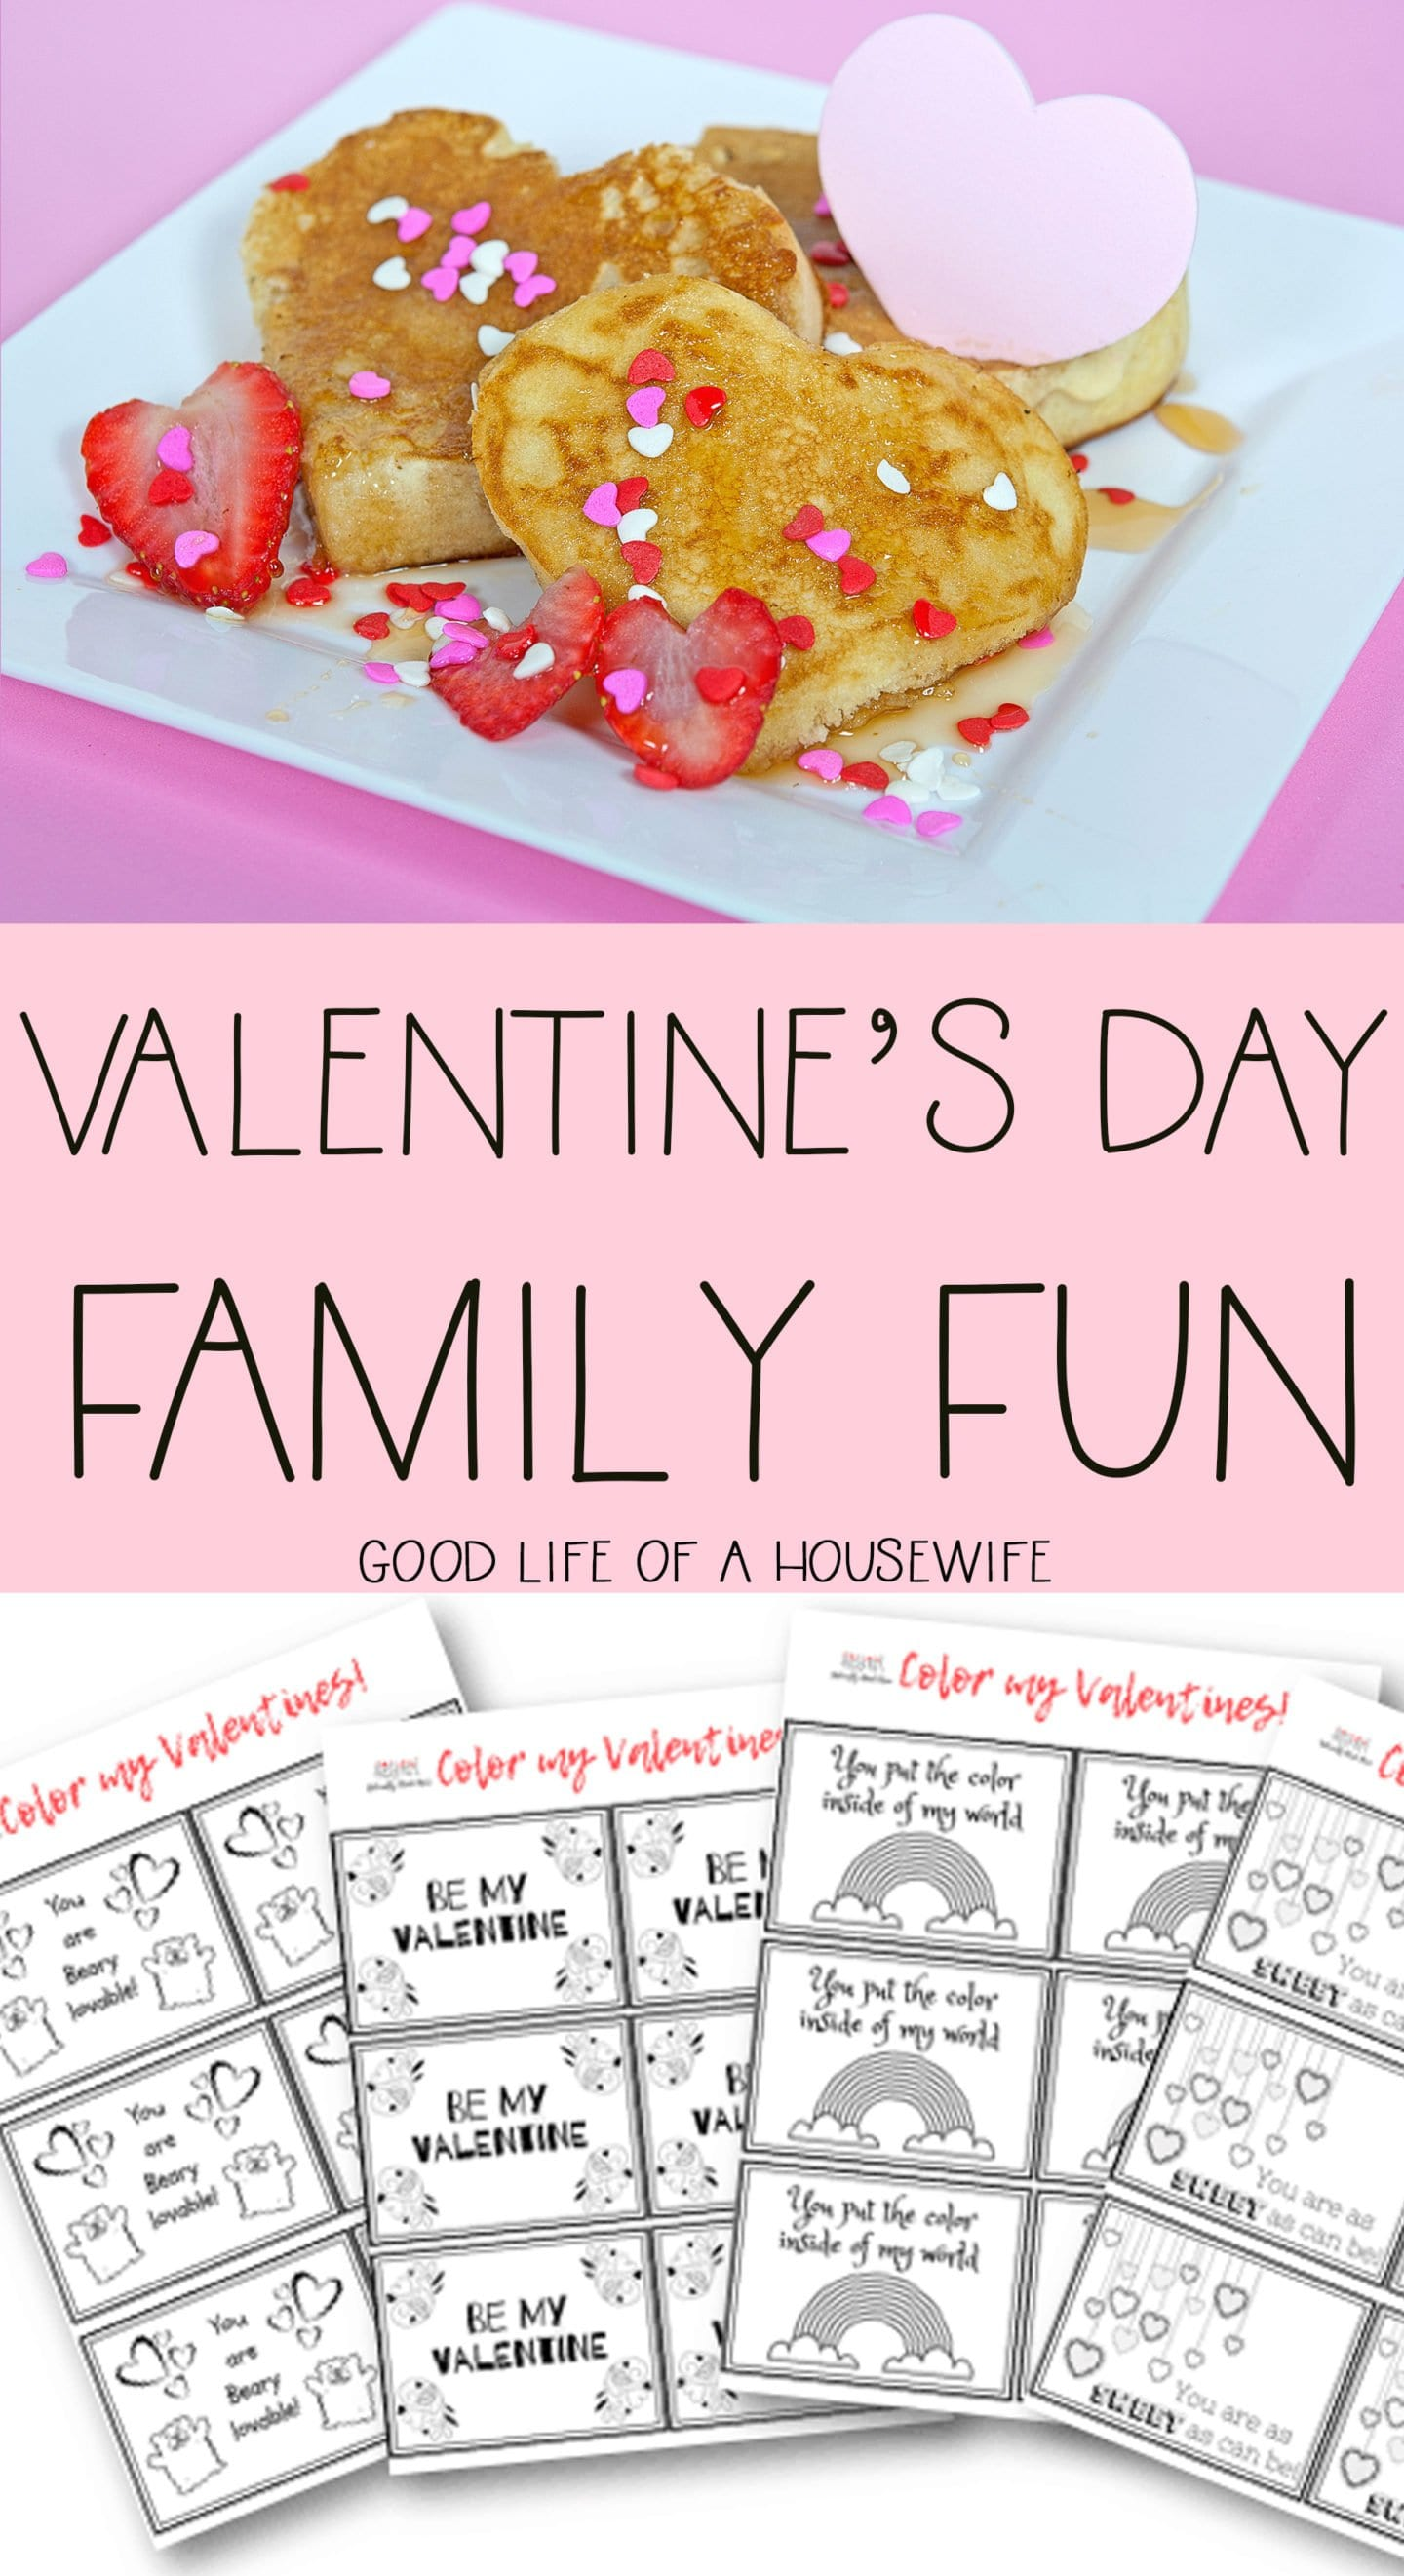 Valentine's Day Family Fun for Kids and the whole family